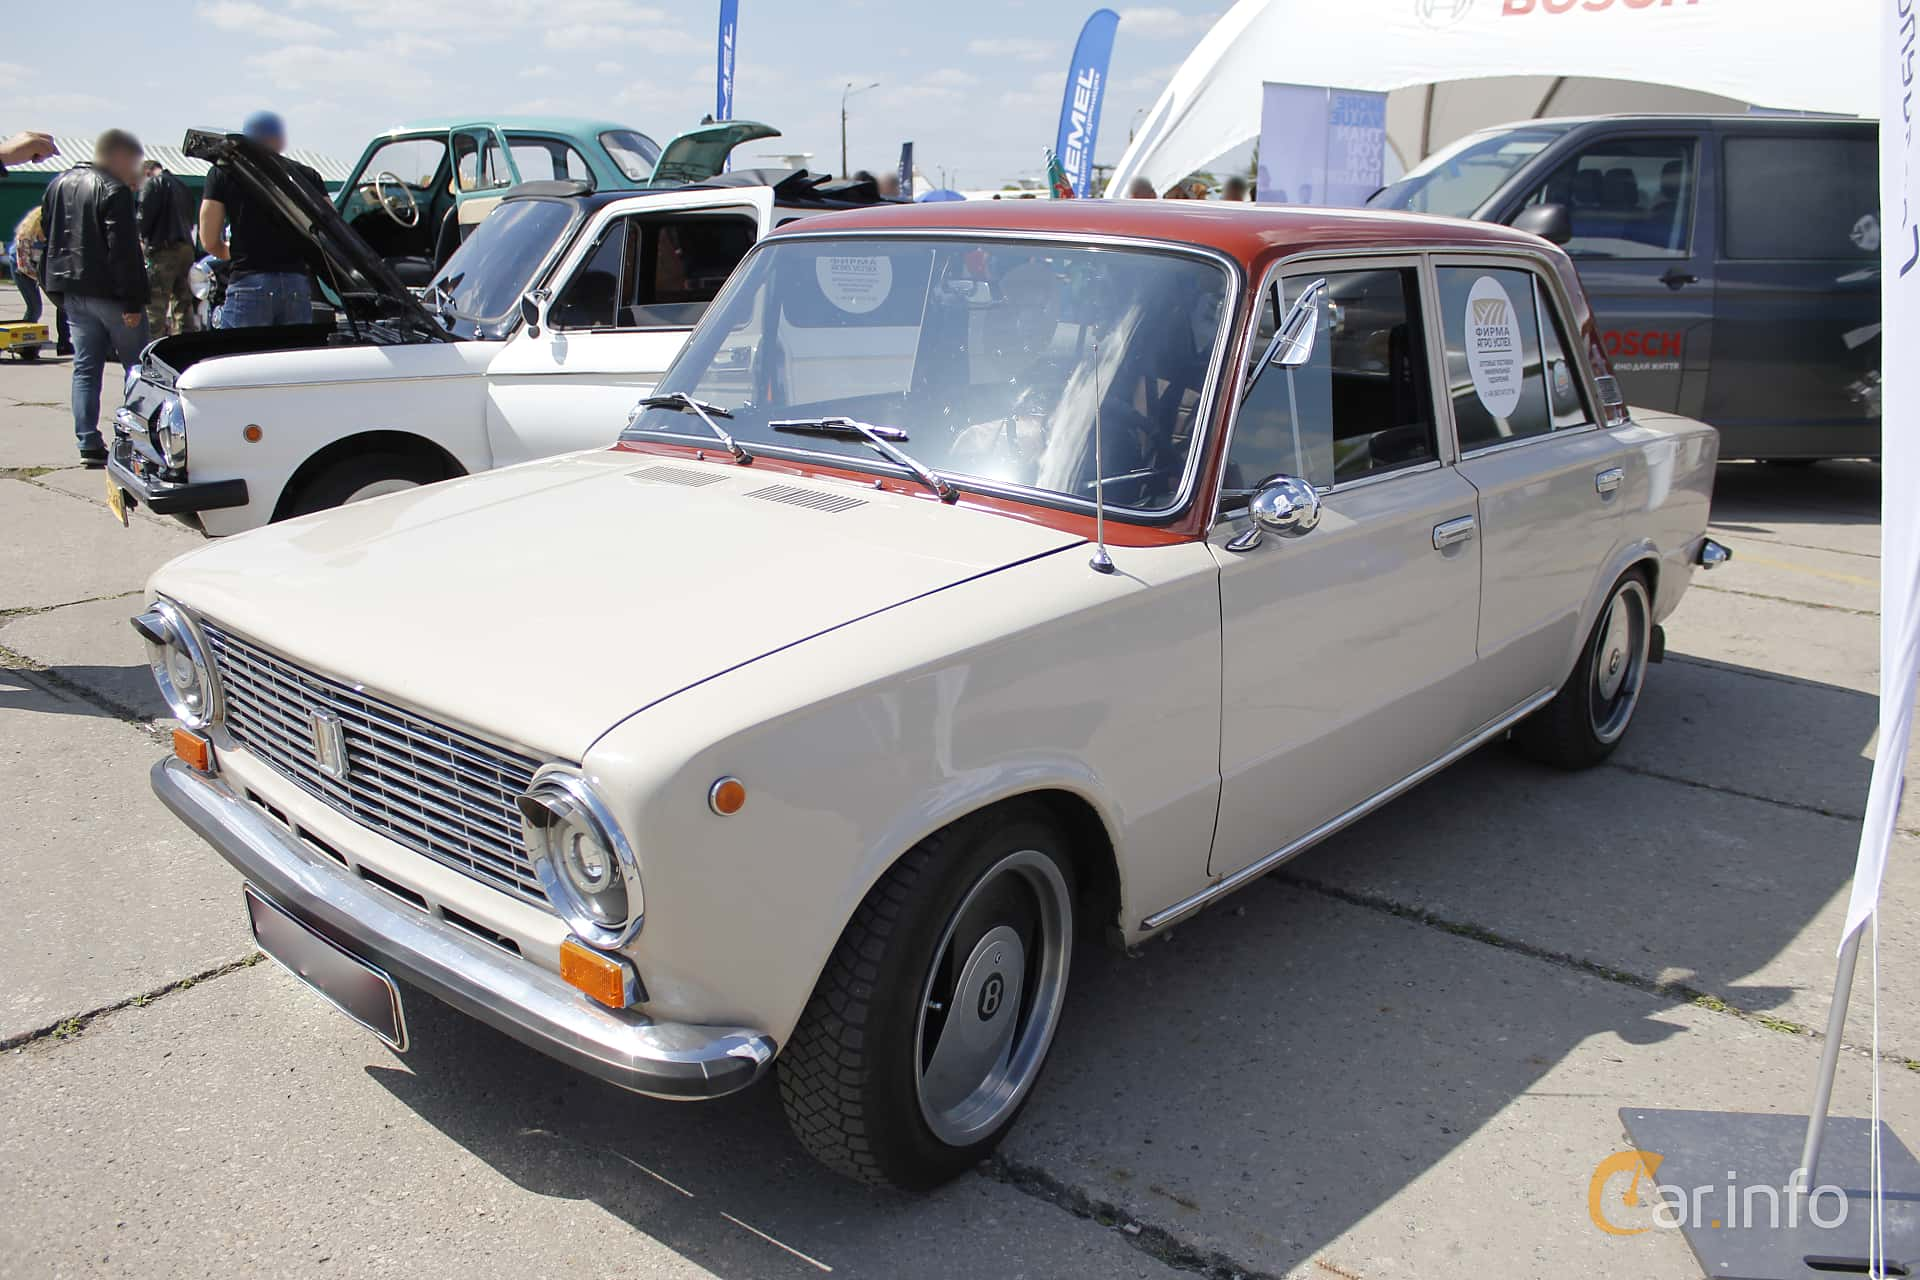 VAZ VAZ-21013 1.2 Manuell, 63hk, 1972 at Old Car Land no.1 2018